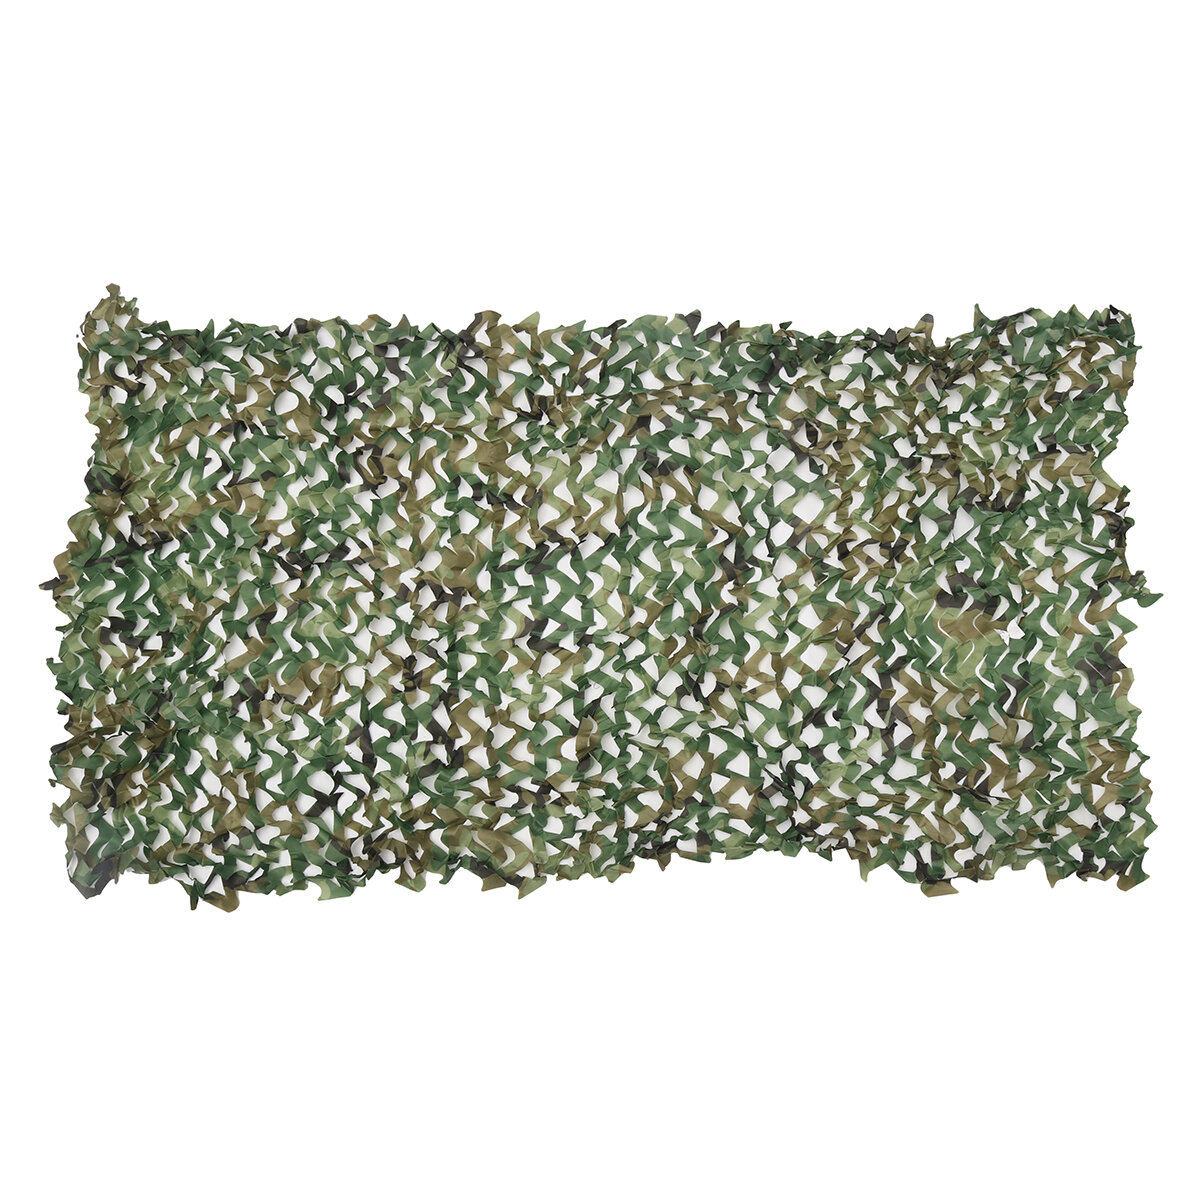 Camouflage Net Camouflage Net Shading Net Decoration Net Courtyard Camping Outdoor Army Military Sun Shelter Car Cover